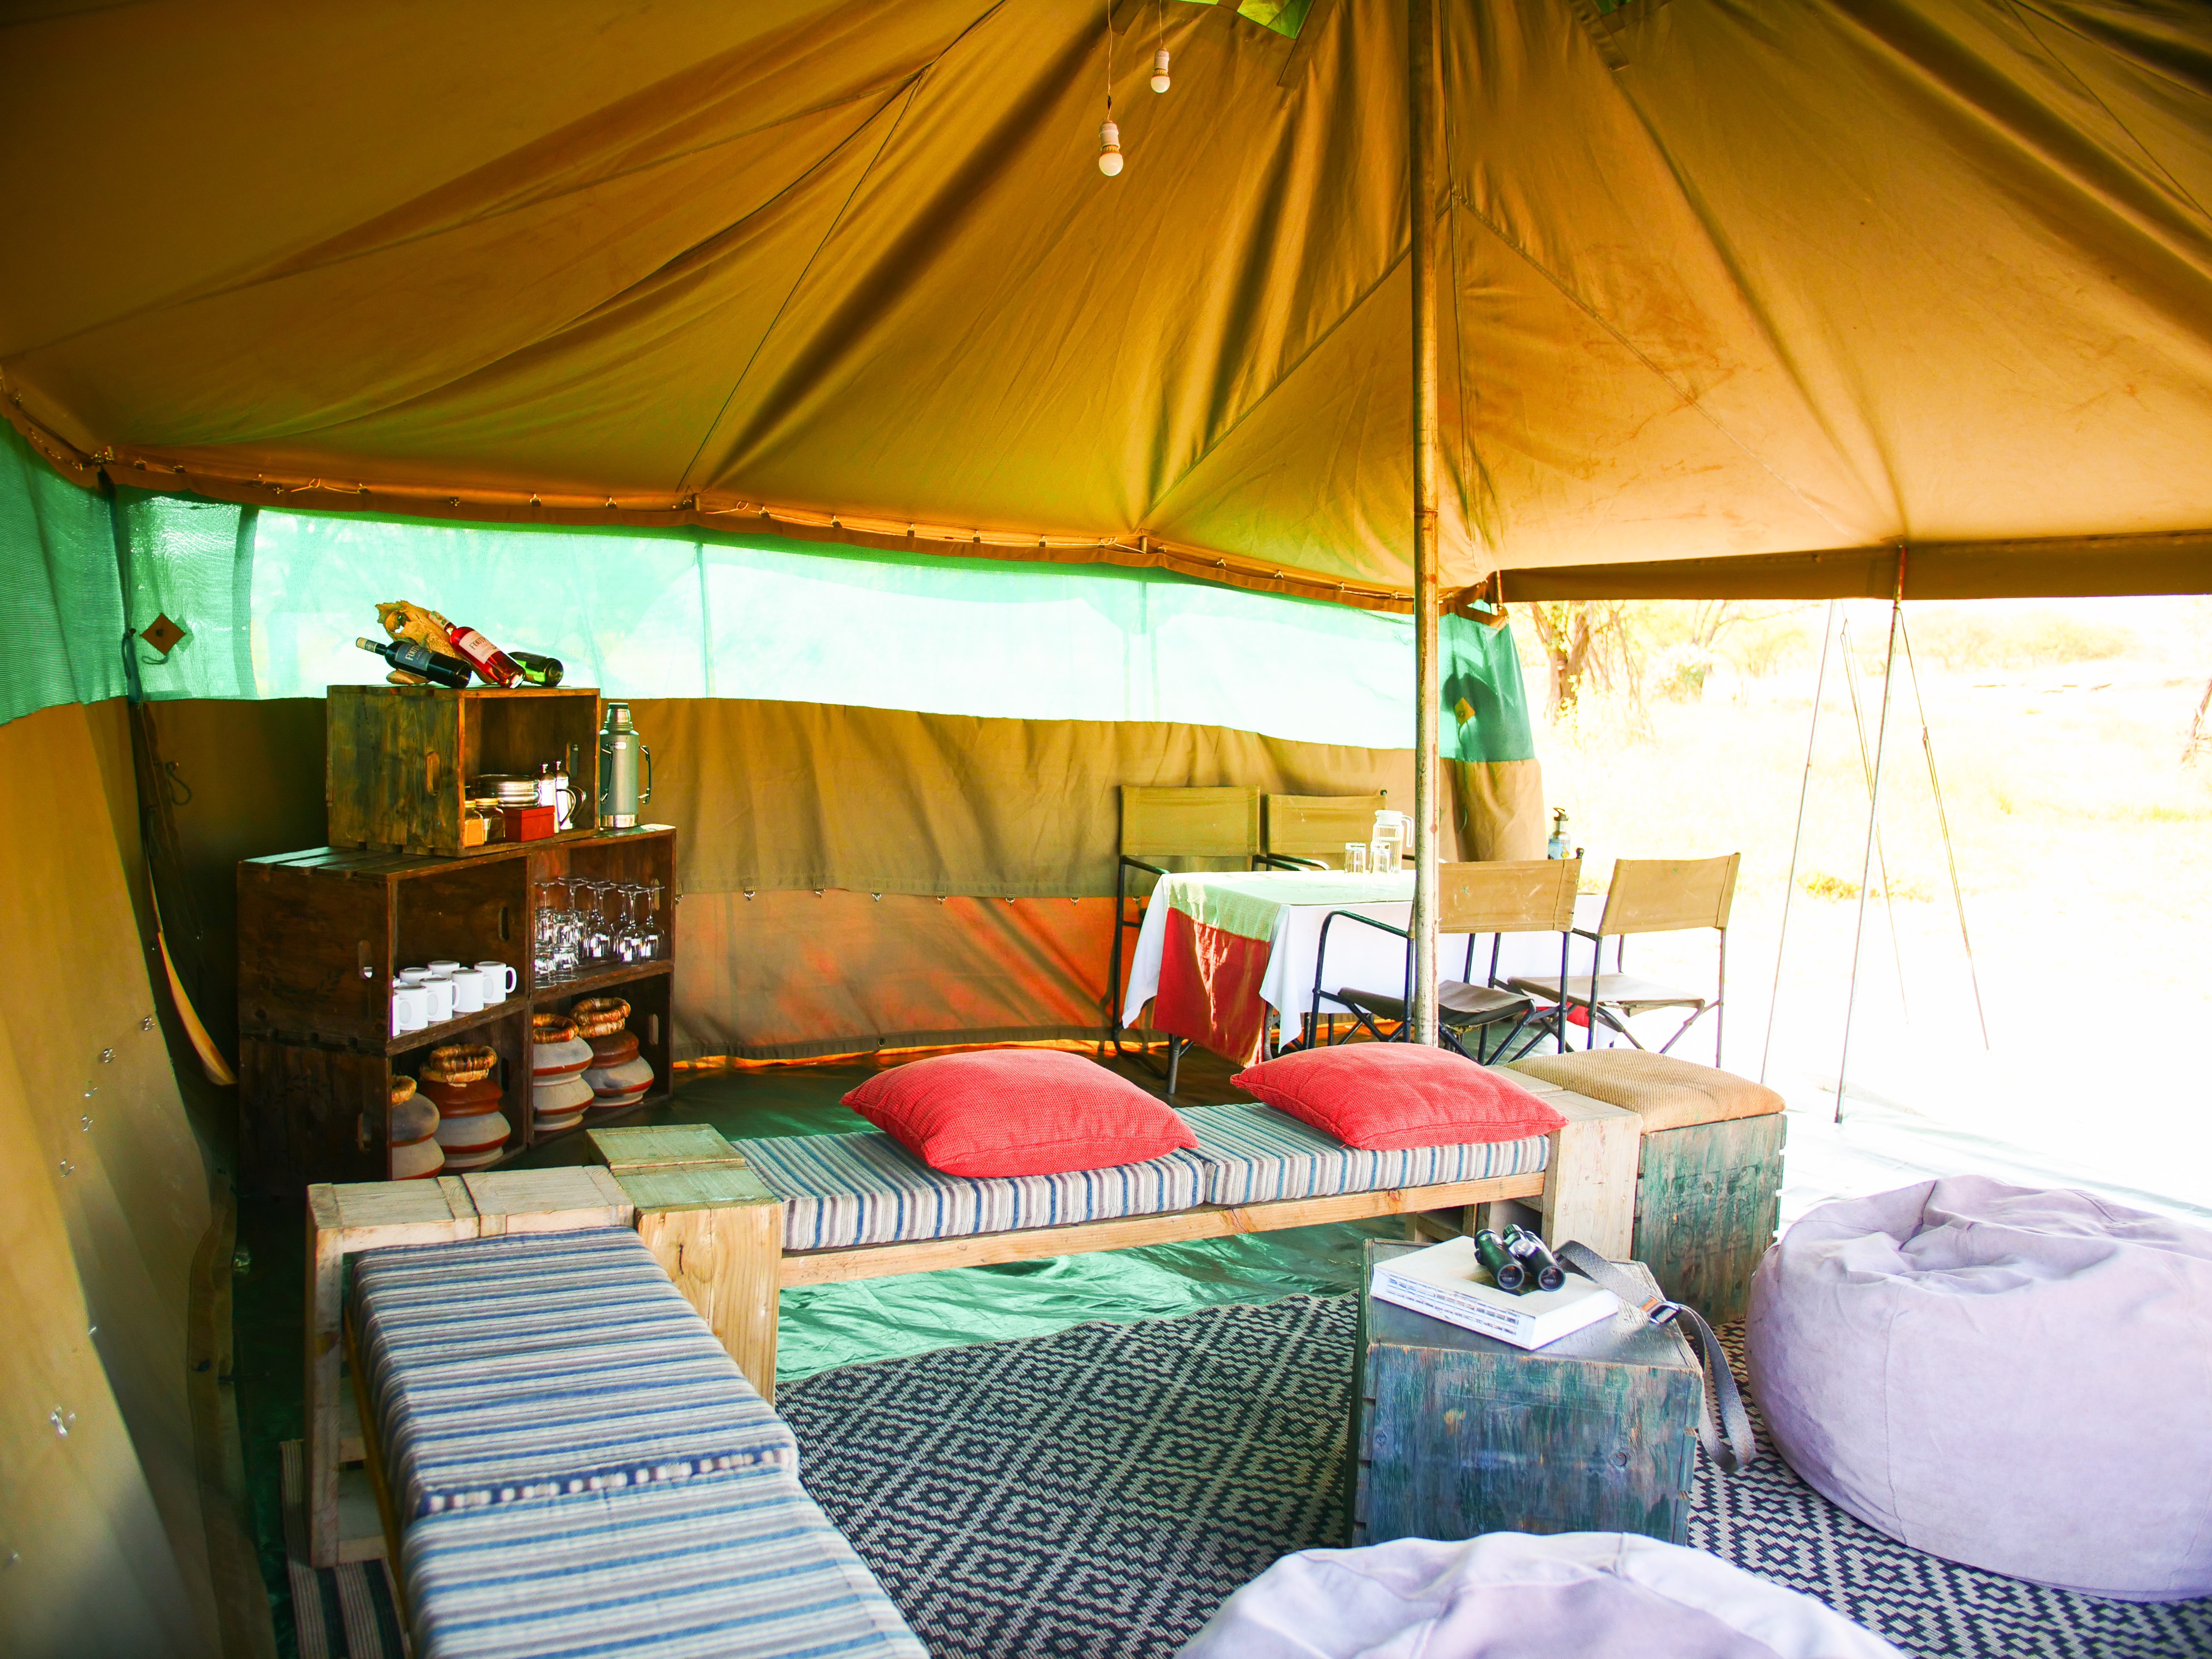 Serengeti-walking-camp-mess-tent.jpg#asset:116599